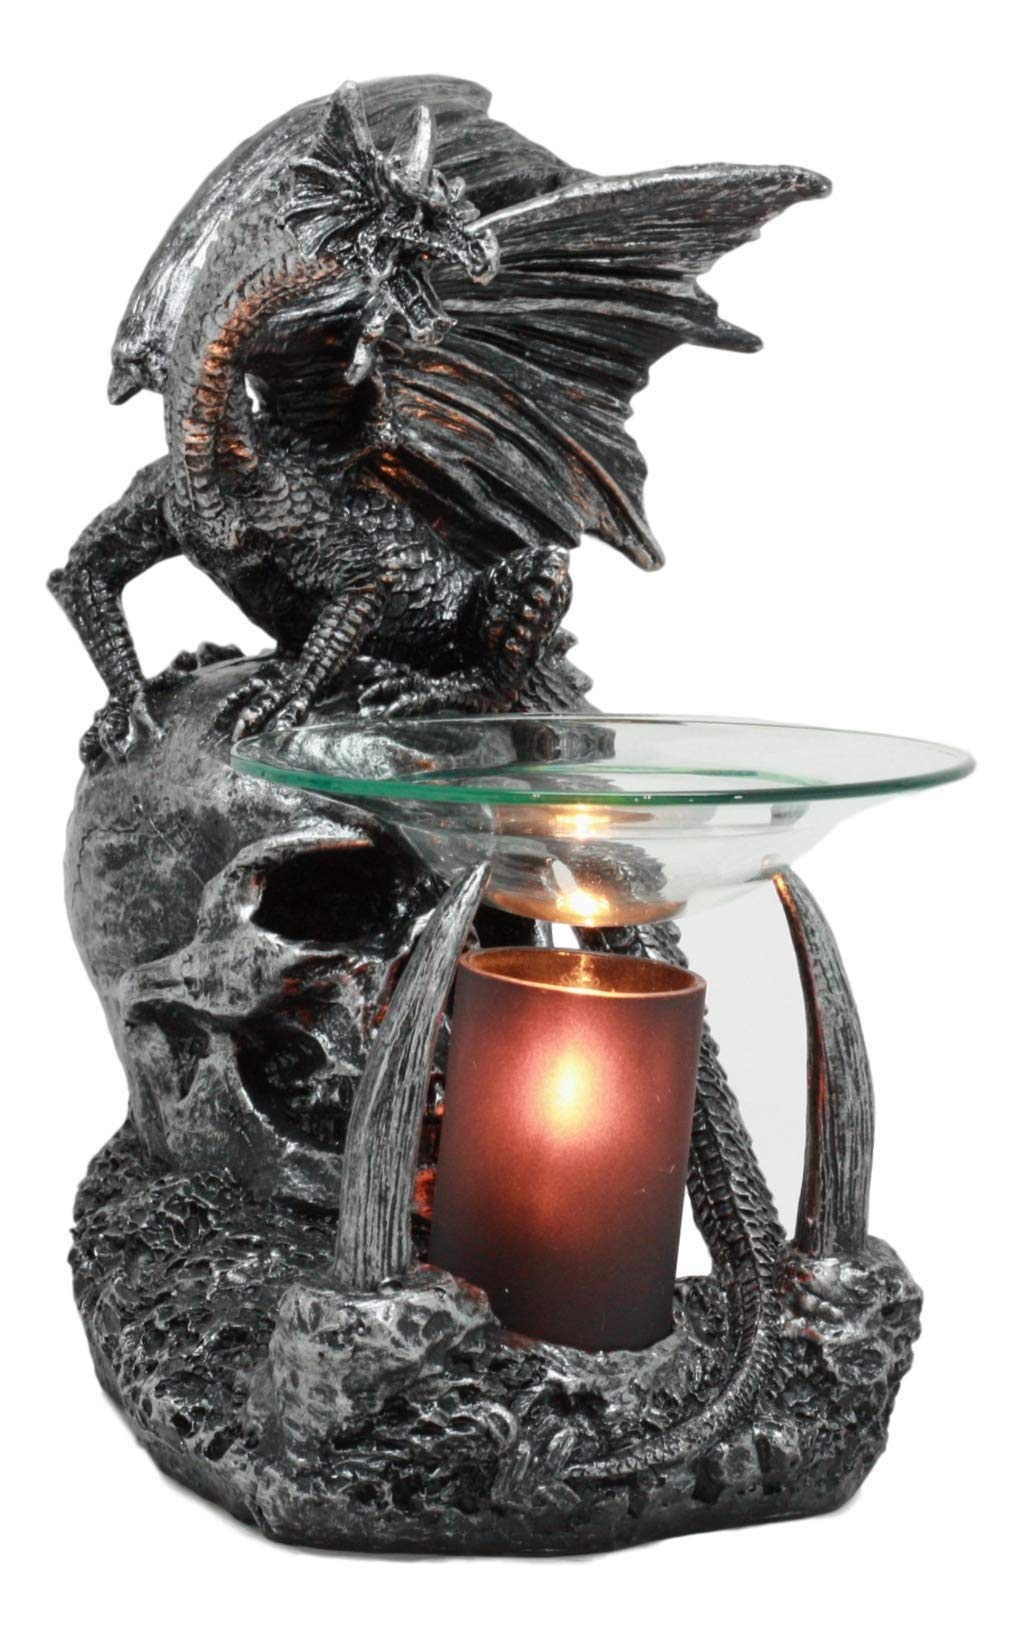 Ebros Gothic Sabretooth Skull Graveyard Dragon Electric Oil Burner Or Tart Warmer Decor Statue 8.5'' Tall Home Fragrance Aroma Accessory Figurine by Ebros Gift